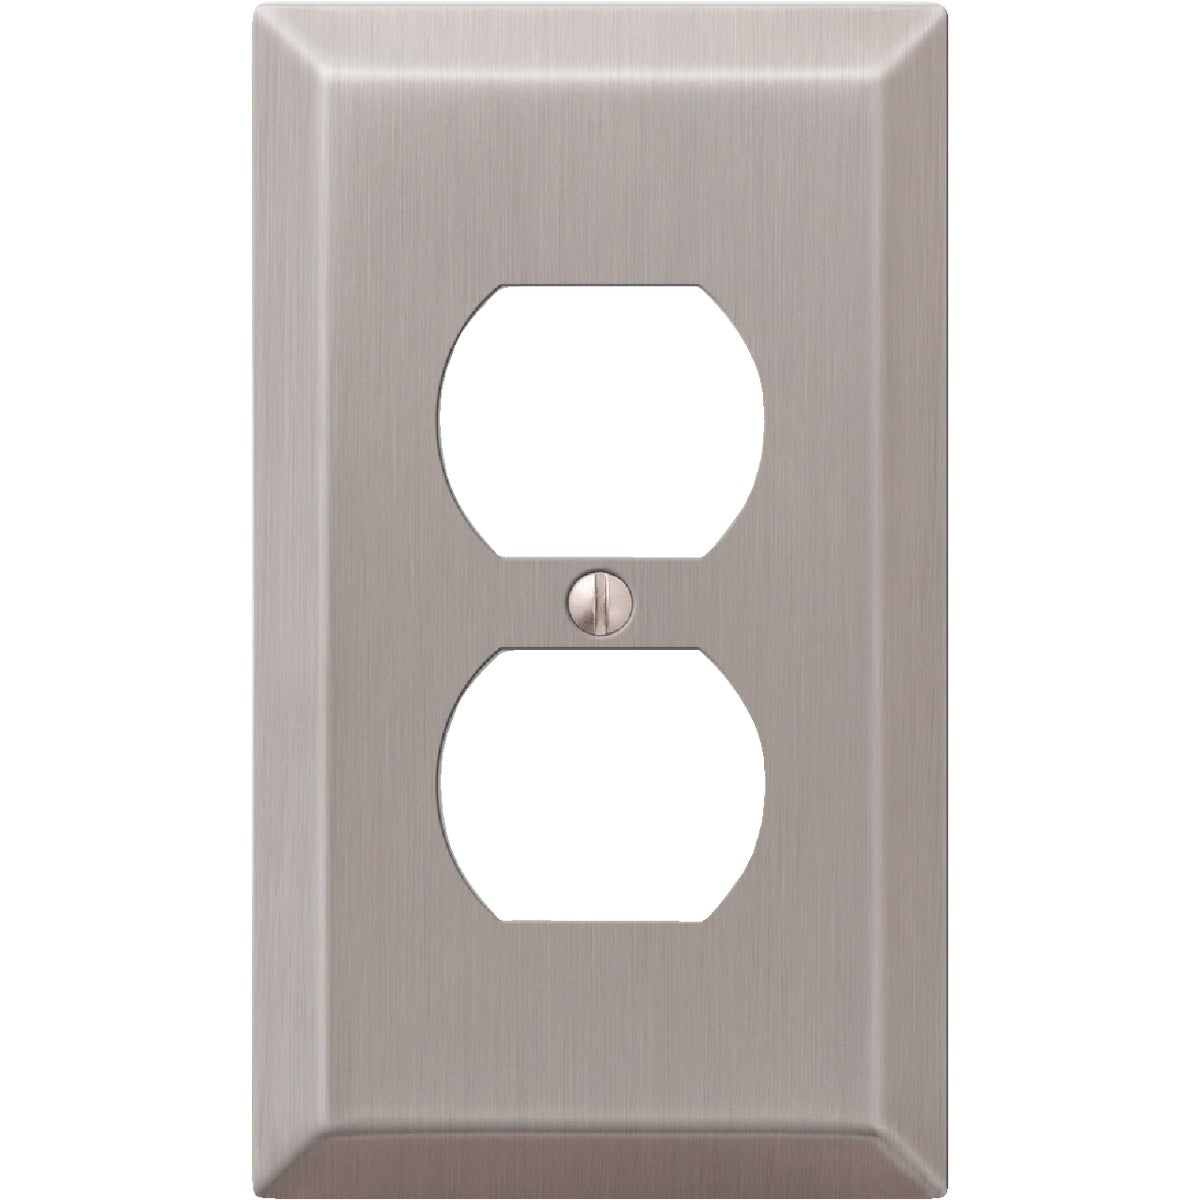 BR NICKEL OUTLET WALLPLT